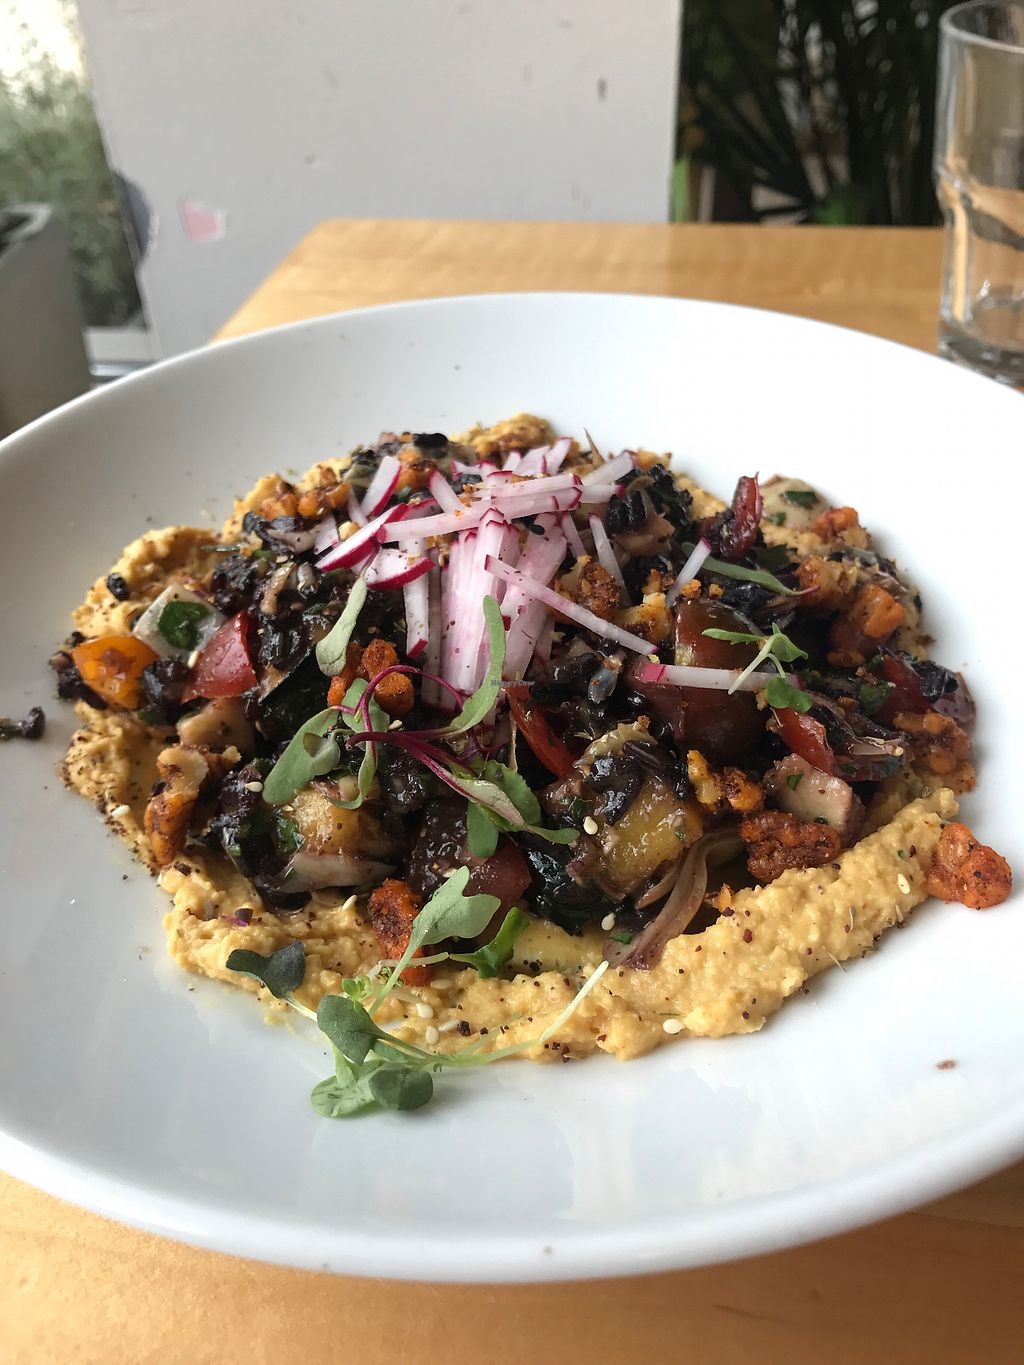 """Photo of Kerr Street Cafe  by <a href=""""/members/profile/Charliepenn"""">Charliepenn</a> <br/>Autumn Grains <br/> November 12, 2017  - <a href='/contact/abuse/image/104925/324939'>Report</a>"""